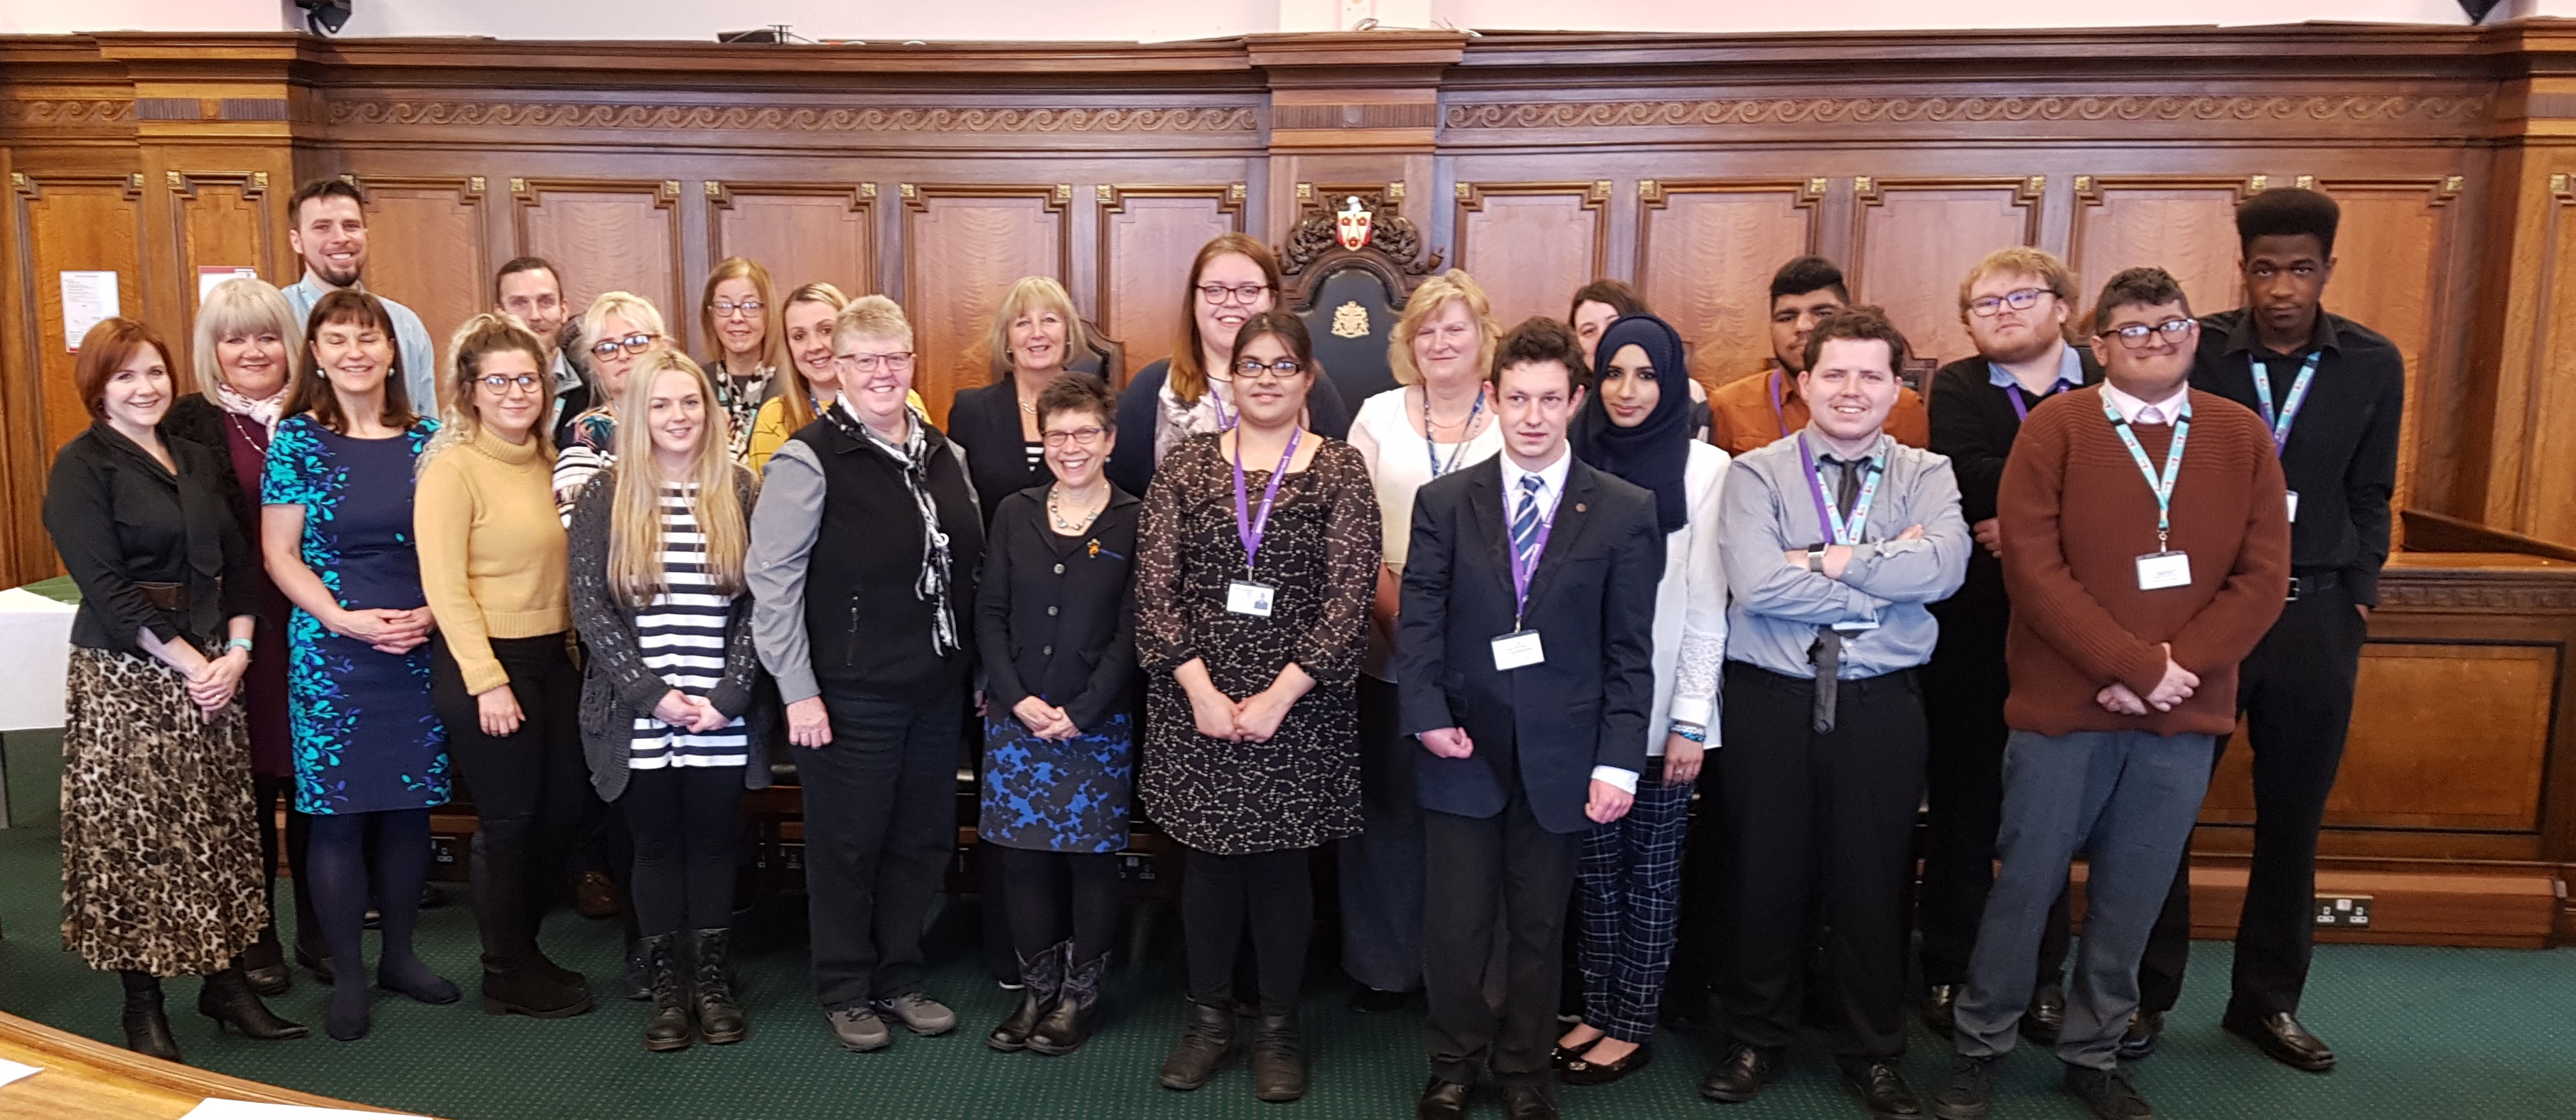 Students and staff from Preston's College, the founders of Project SEARCH and Council colleagues